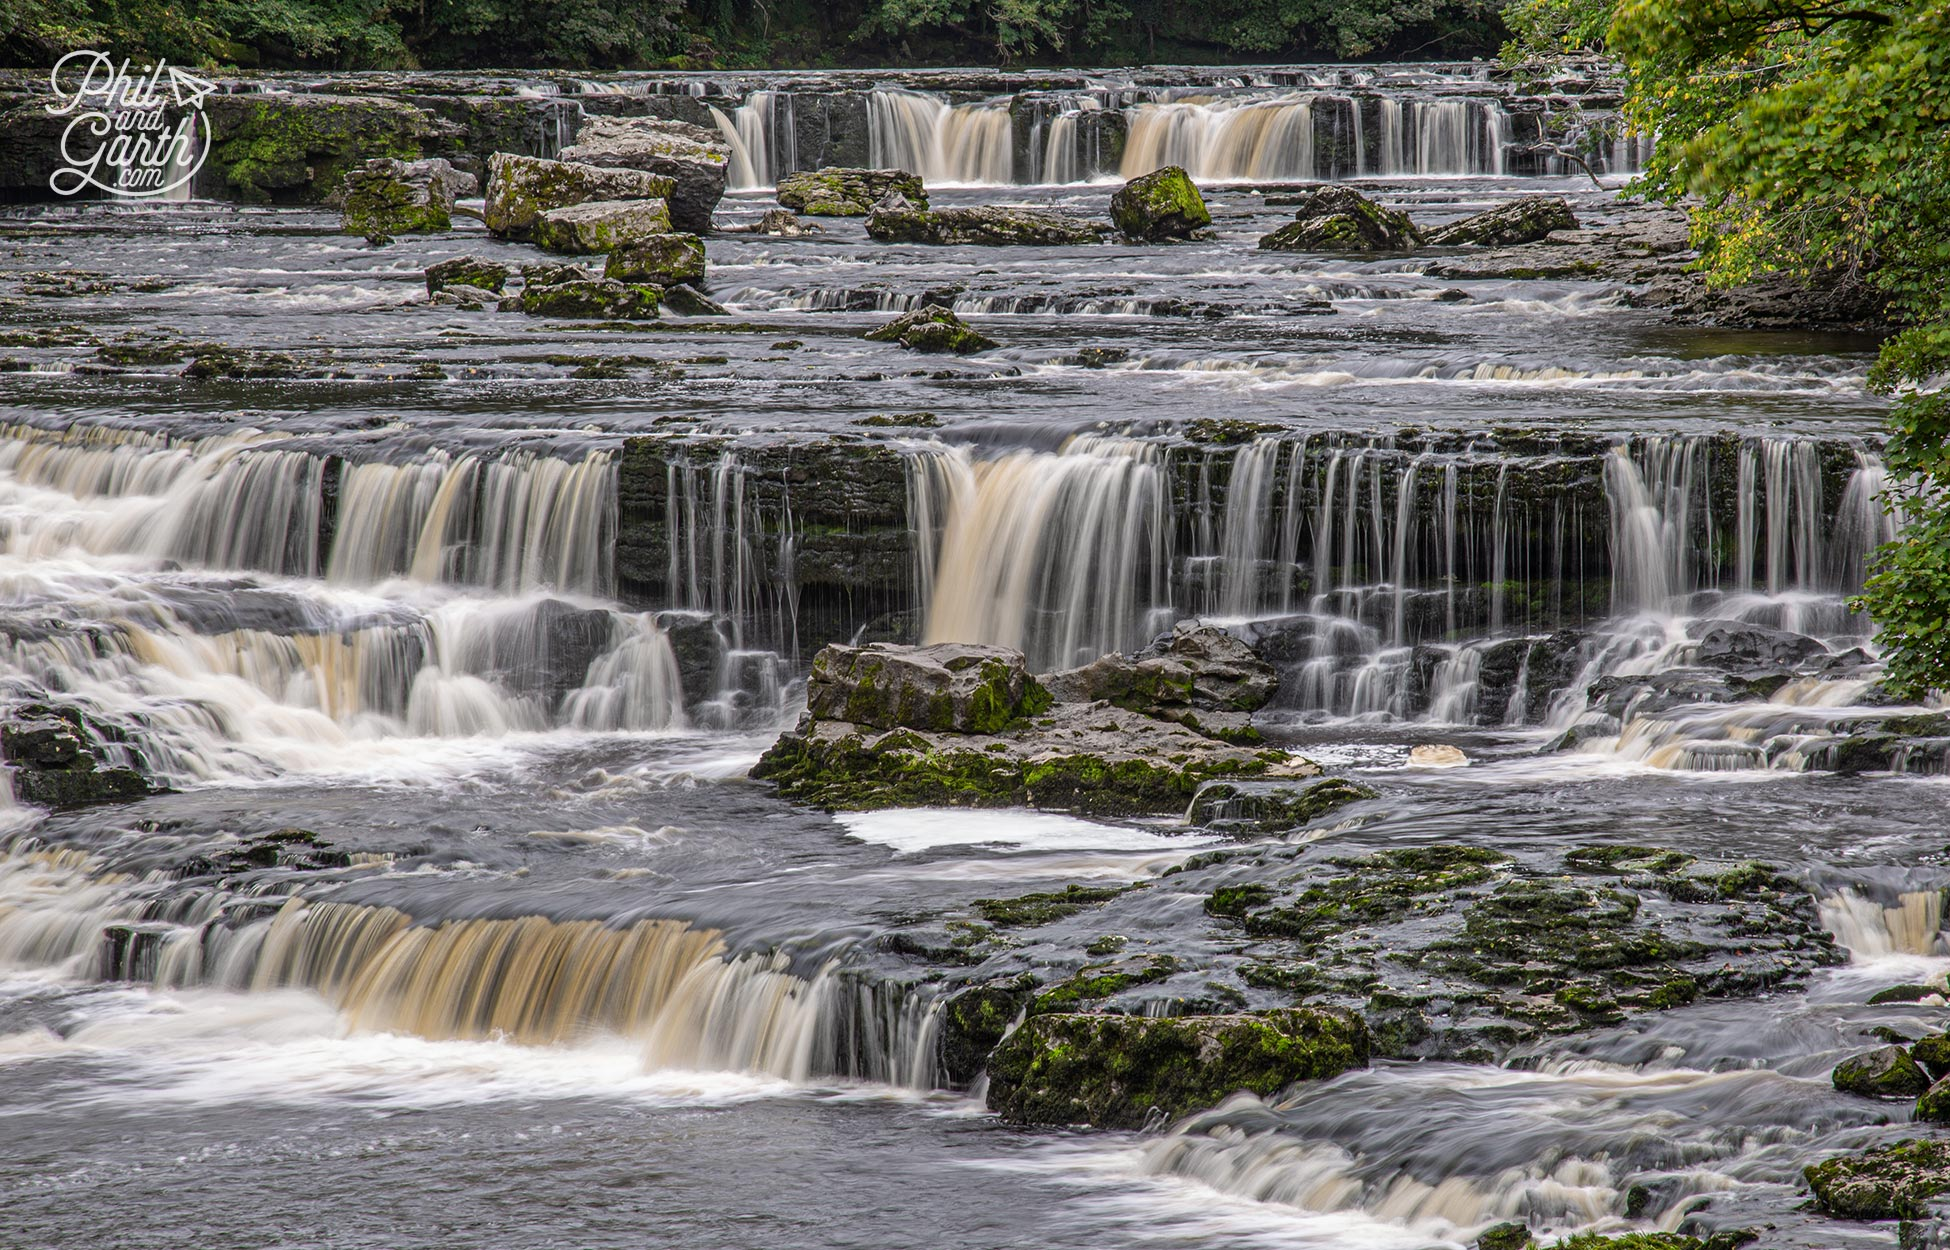 The dramatic and picturesque Aysgarth Falls in Wensleydale, Yorkshire Dales